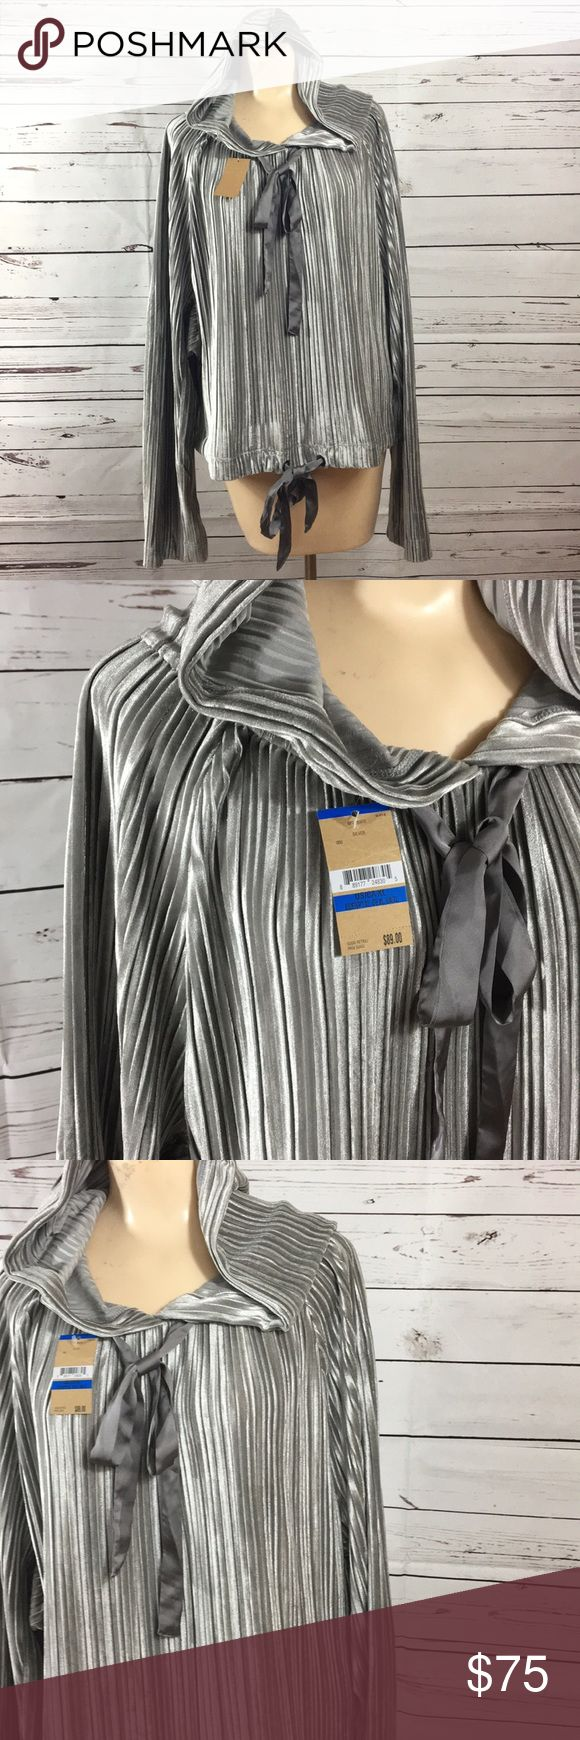 """🆕 Rachel Roy silver hoodie Silver velvet Rachel Roy silver hoodie. I mean come on. Gorgeous! Ties as neck and hem. Super stretch and so stylish! Who says staying warm can't look good? Slight dolman sleeve for even more comfort.   24"""" pit to pit.  25"""" shoulder to hem. Rachel Roy Tops Sweatshirts & Hoodies"""